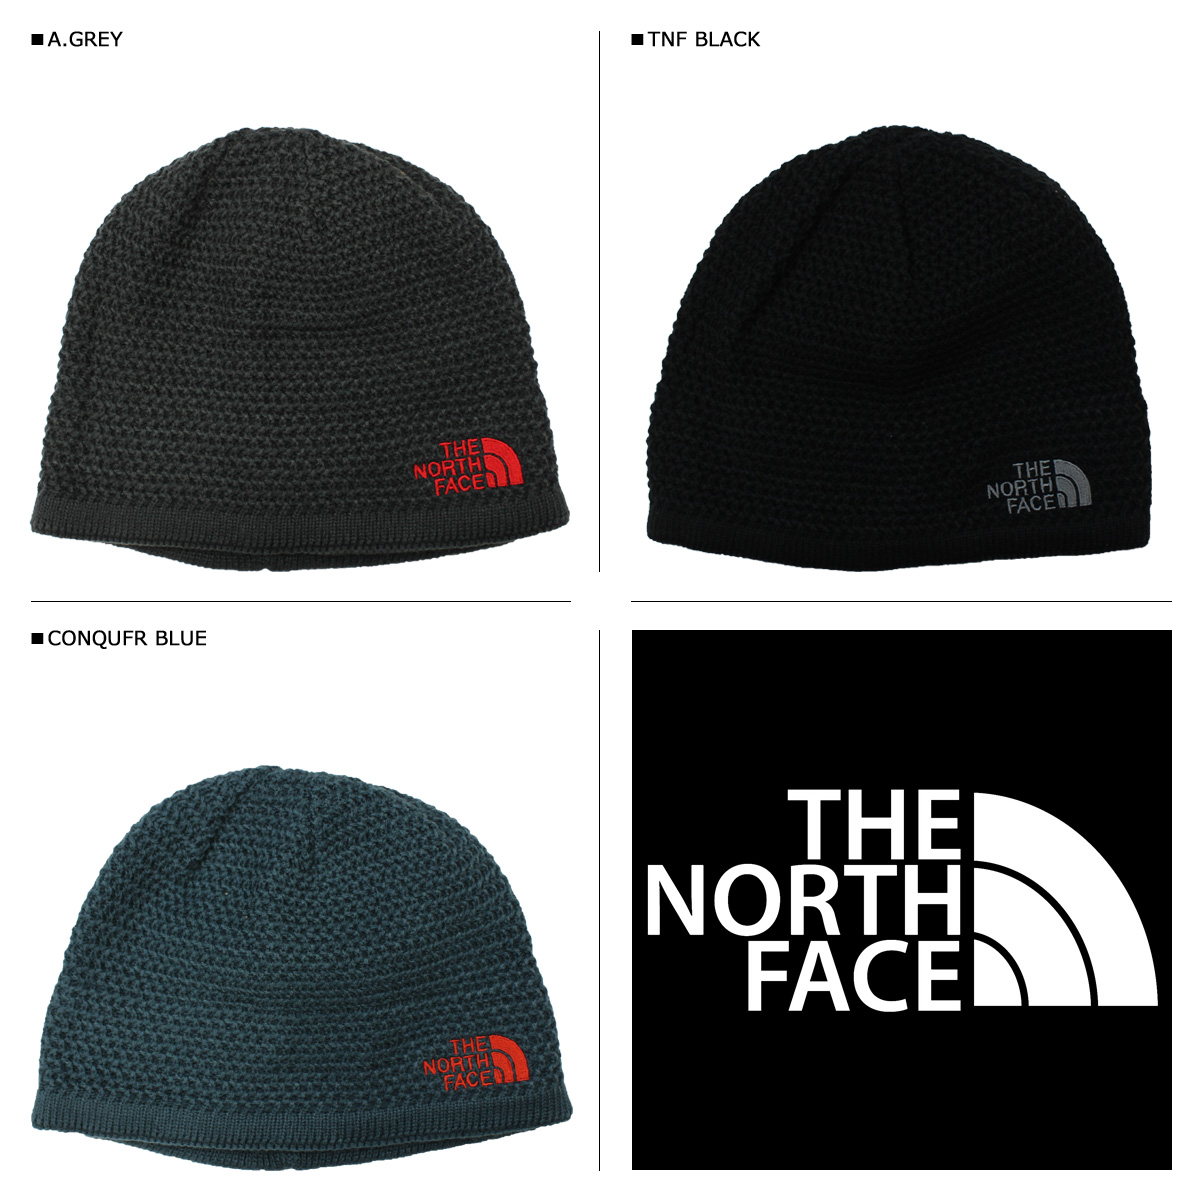 13a29e4a6dae4 North Face THE NORTH FACE knit hat beanie knit cap ABFN 3 color WICKED  BEANIE men gap Dis